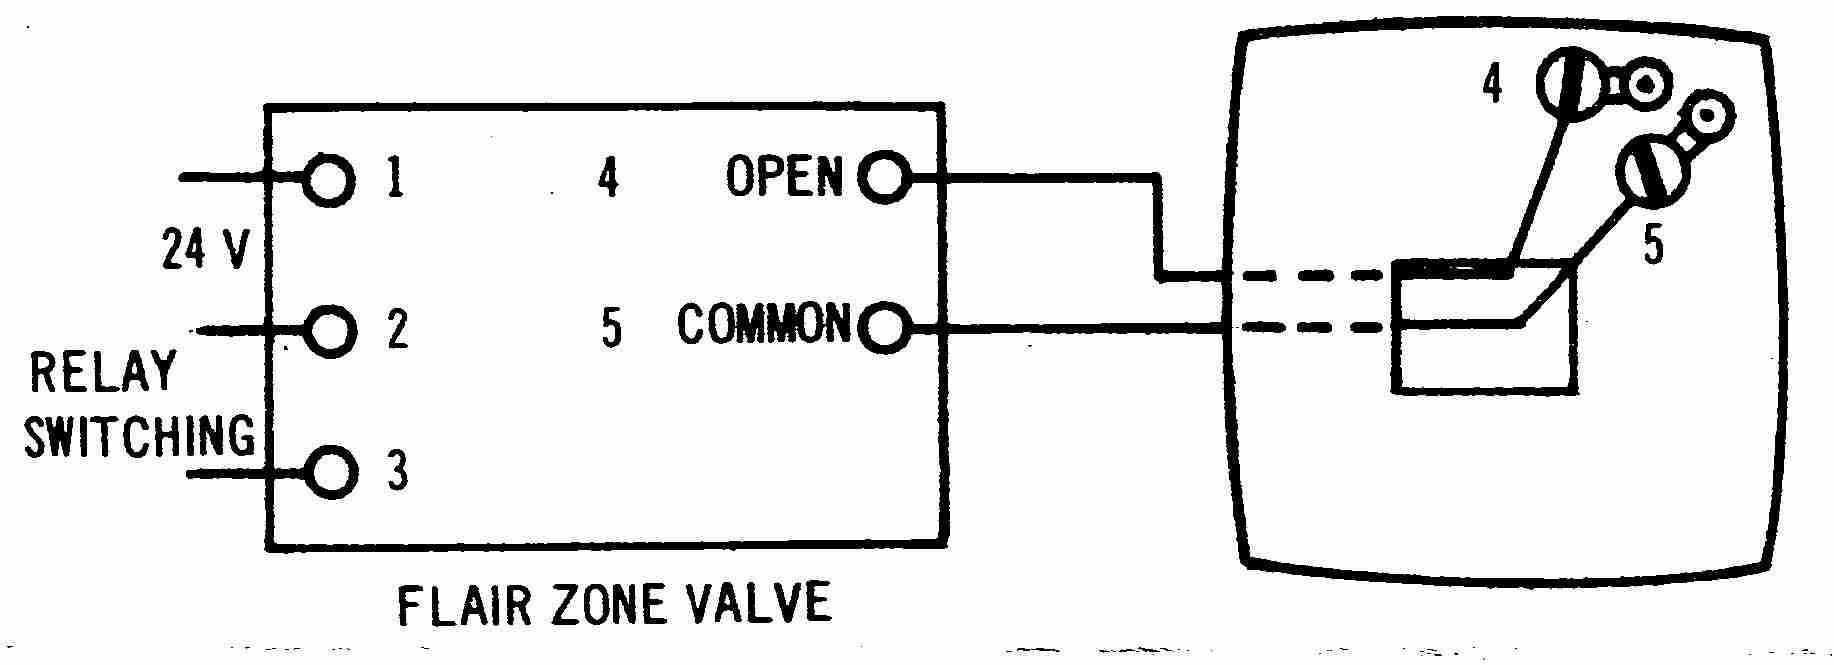 Room Thermostat Wiring Diagrams For Hvac Systems Thermat Evcon Flair 2 Wire Thermosat Diagram